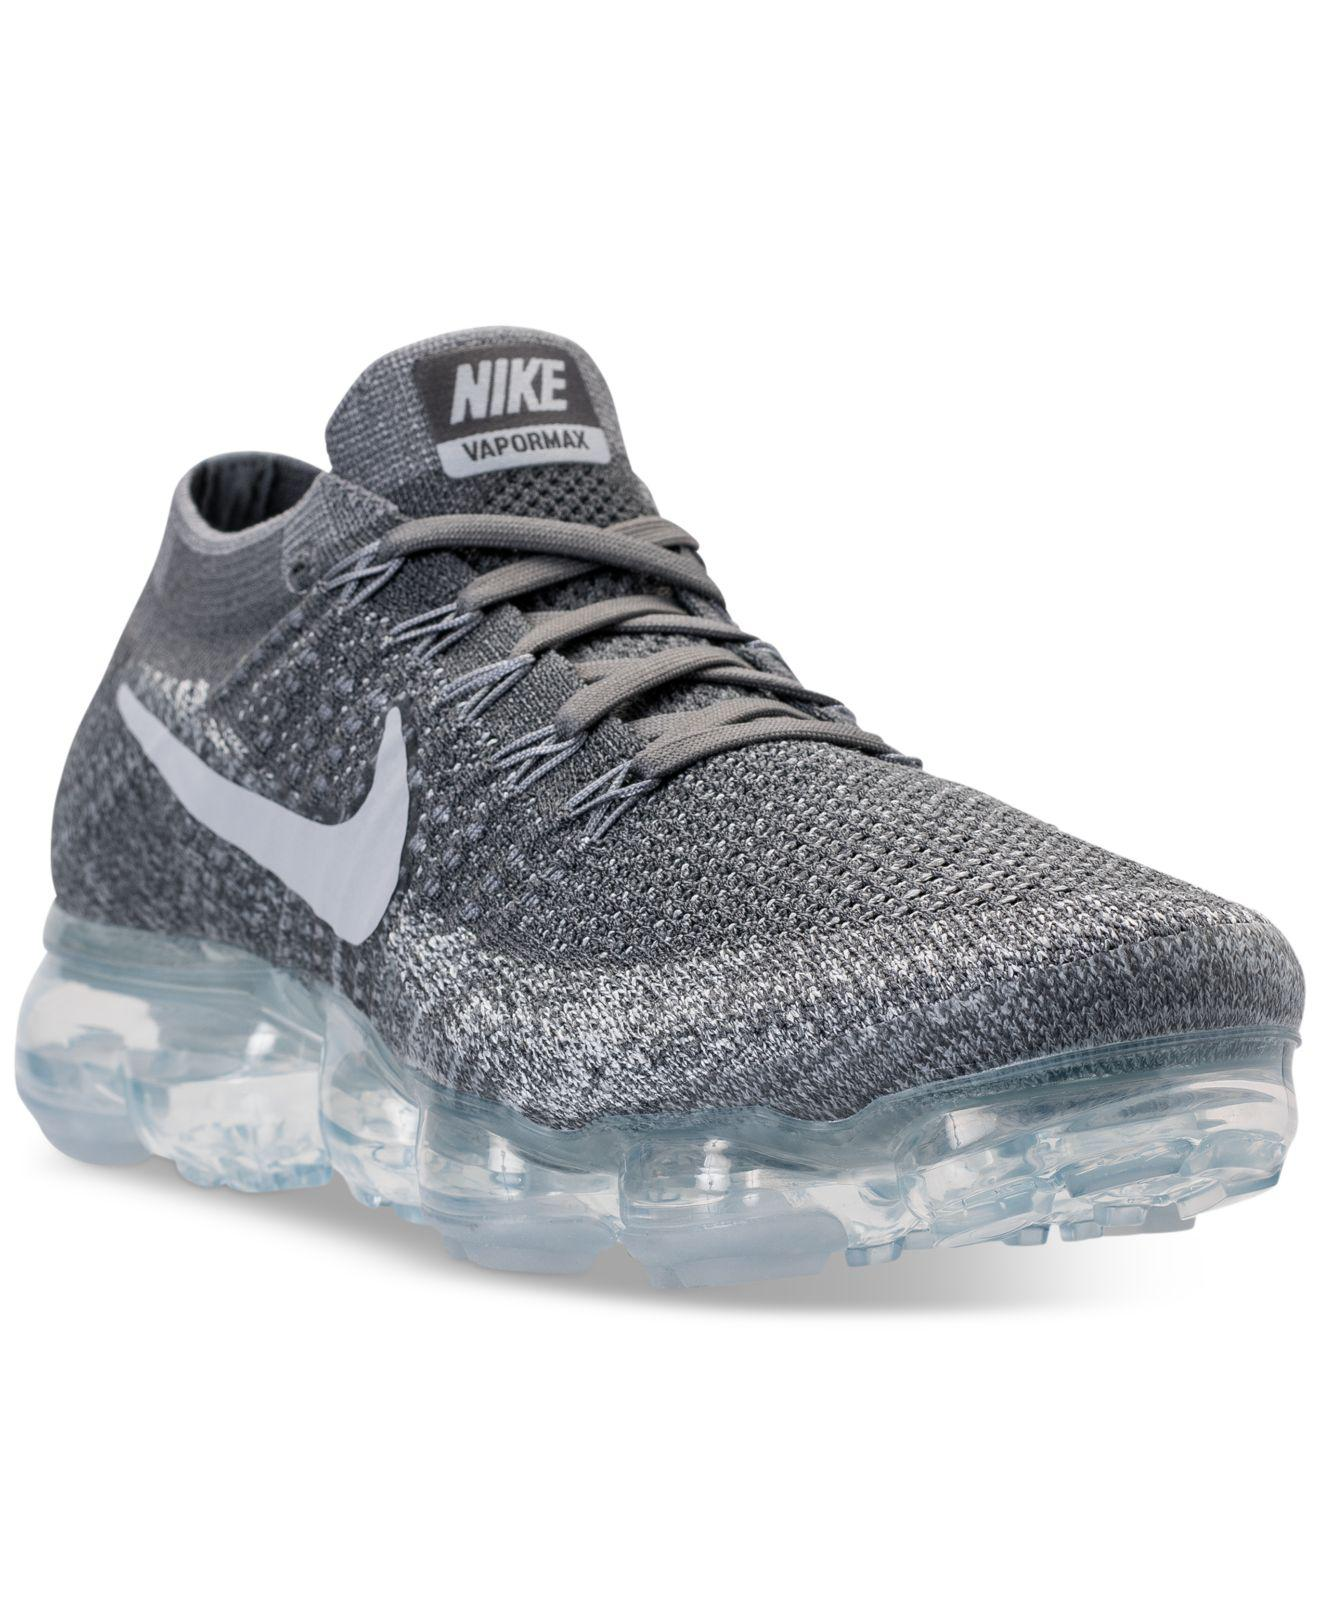 6ee7935f9d123 Lyst - Nike Men s Air Vapormax Flyknit Running Sneakers From Finish ...